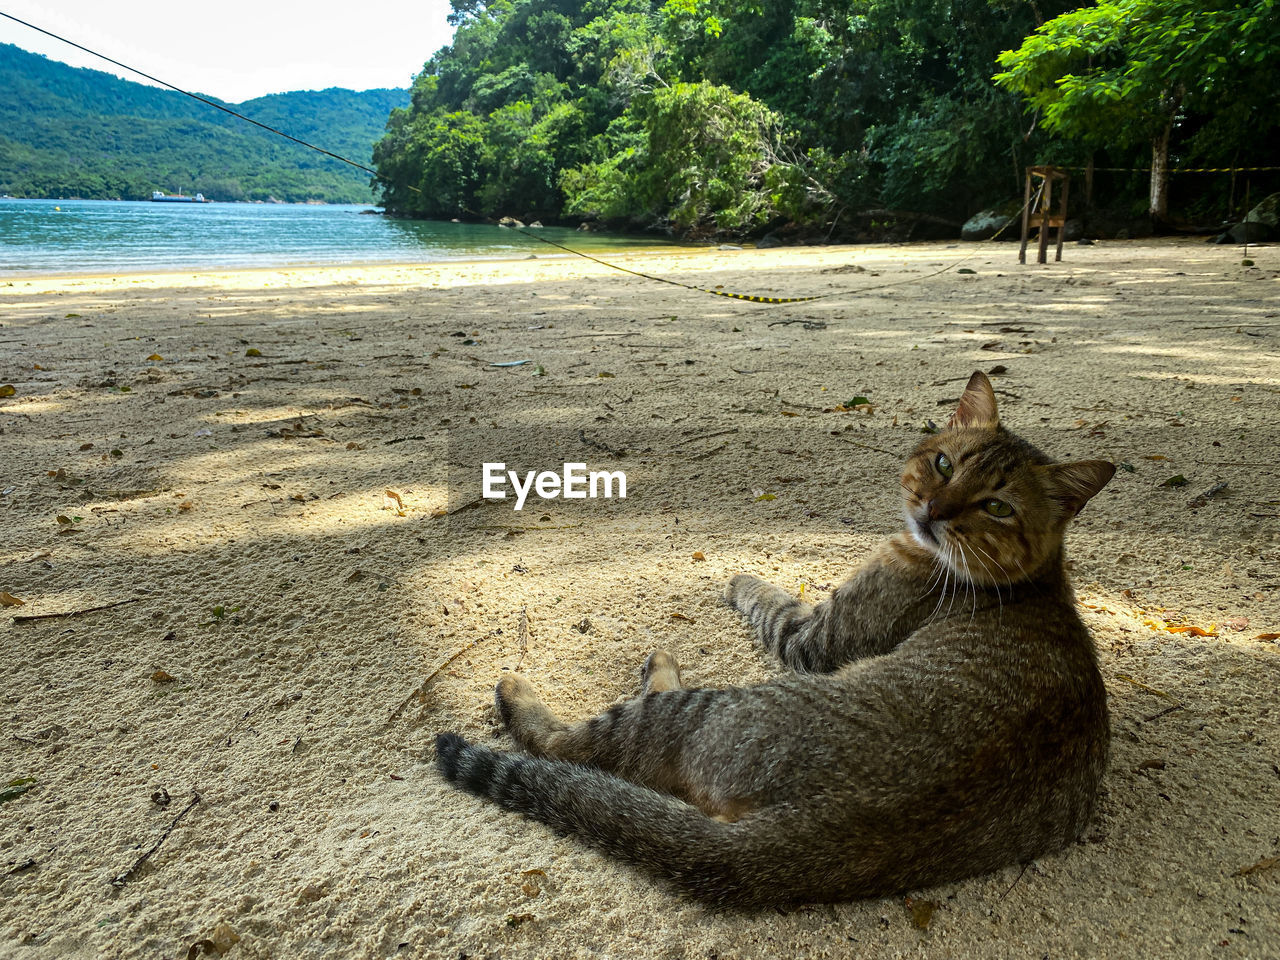 VIEW OF A CAT ON THE GROUND